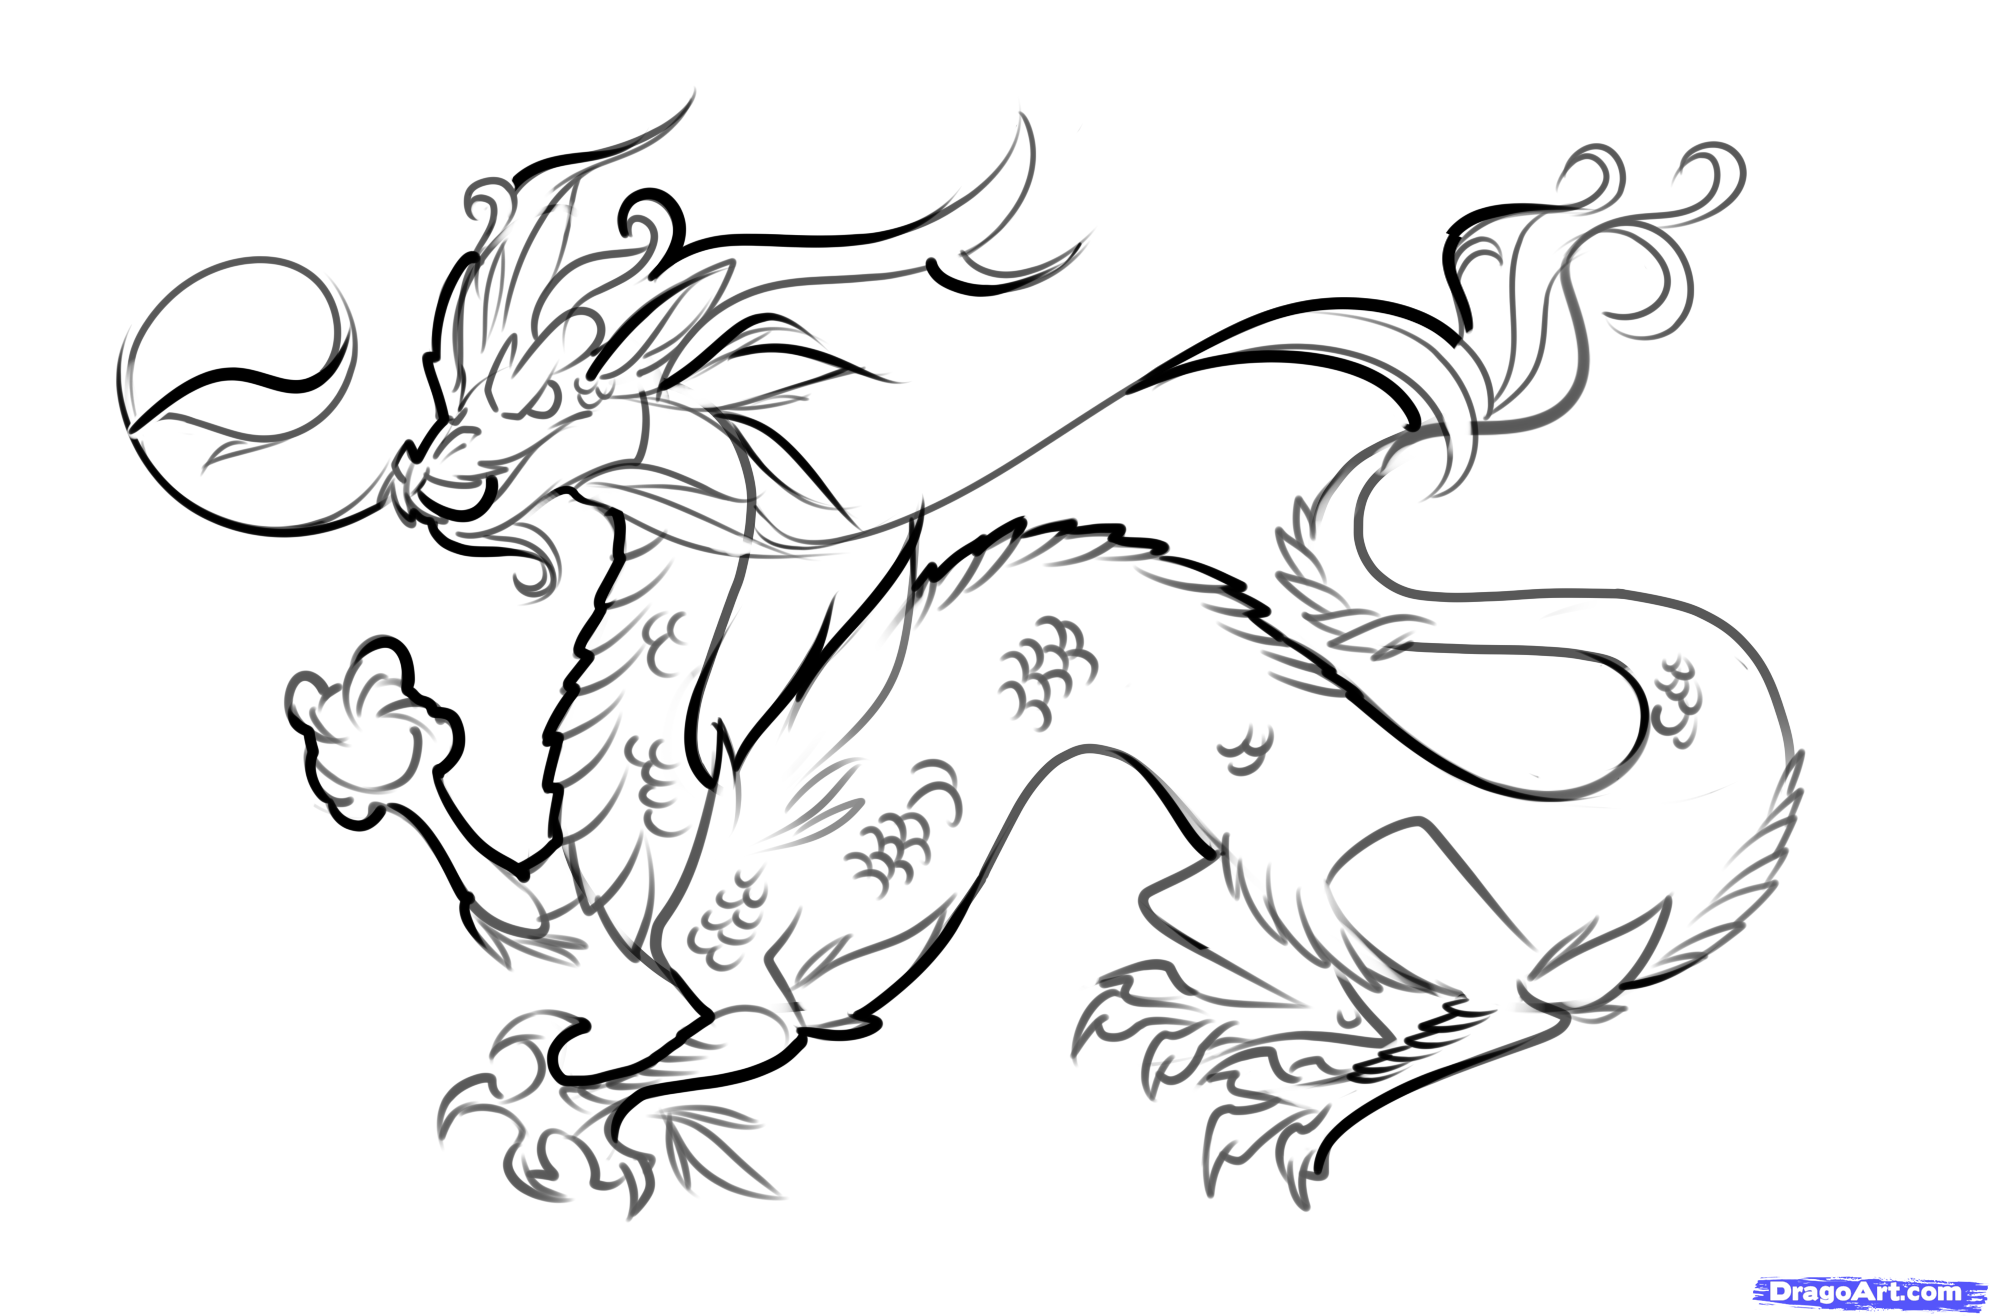 1990x1316 How To Draw Easy Dragons Step By Step To Draw A Chinese Dragon